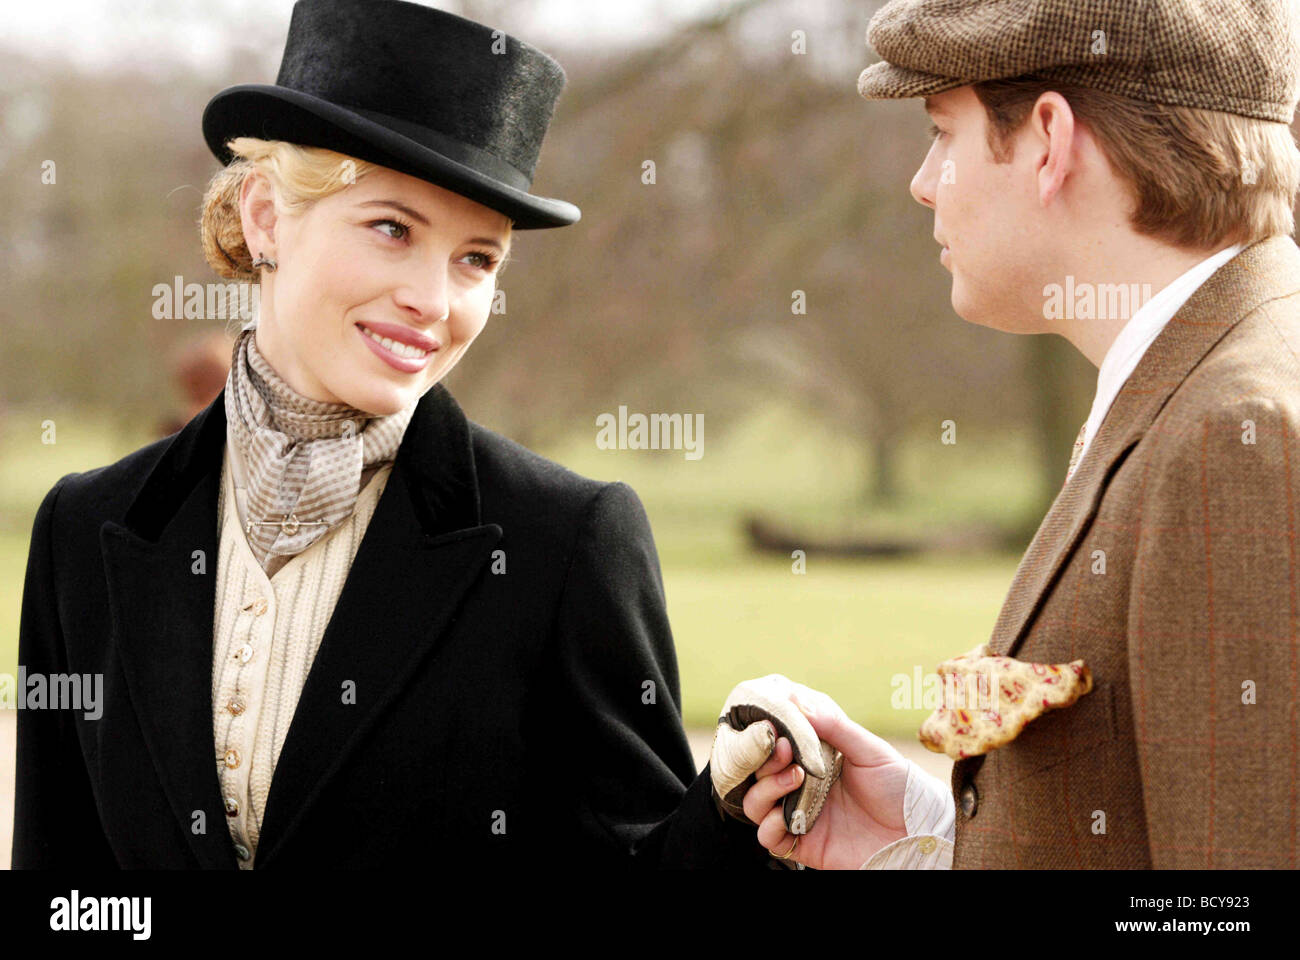 Easy Virtue Year : 2009 Director : Stephan Elliott Jessica Biel, Christian Brassington - Stock Image